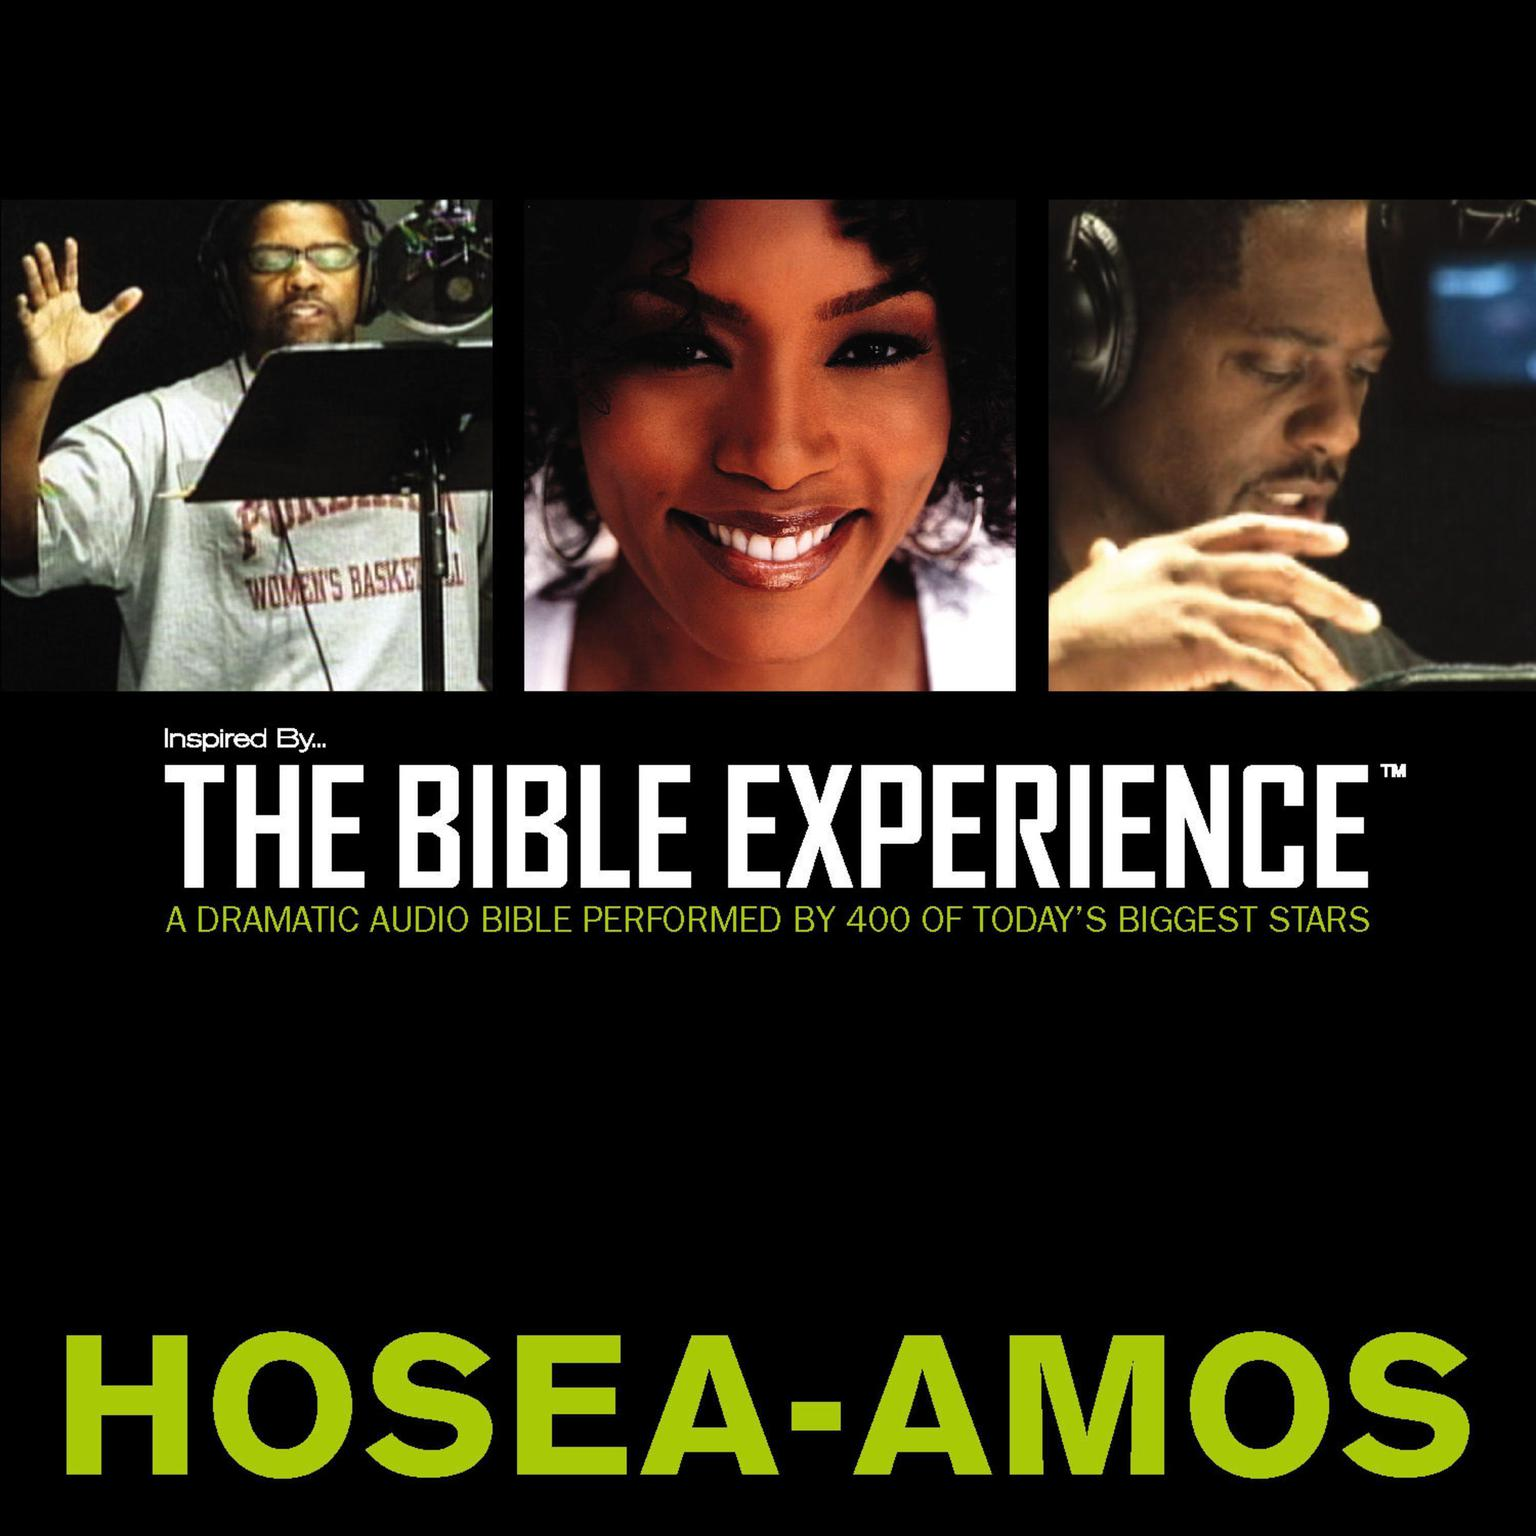 Printable TNIV, Inspired By…The Bible Experience: Hosea - Amos, Audio Download Audiobook Cover Art